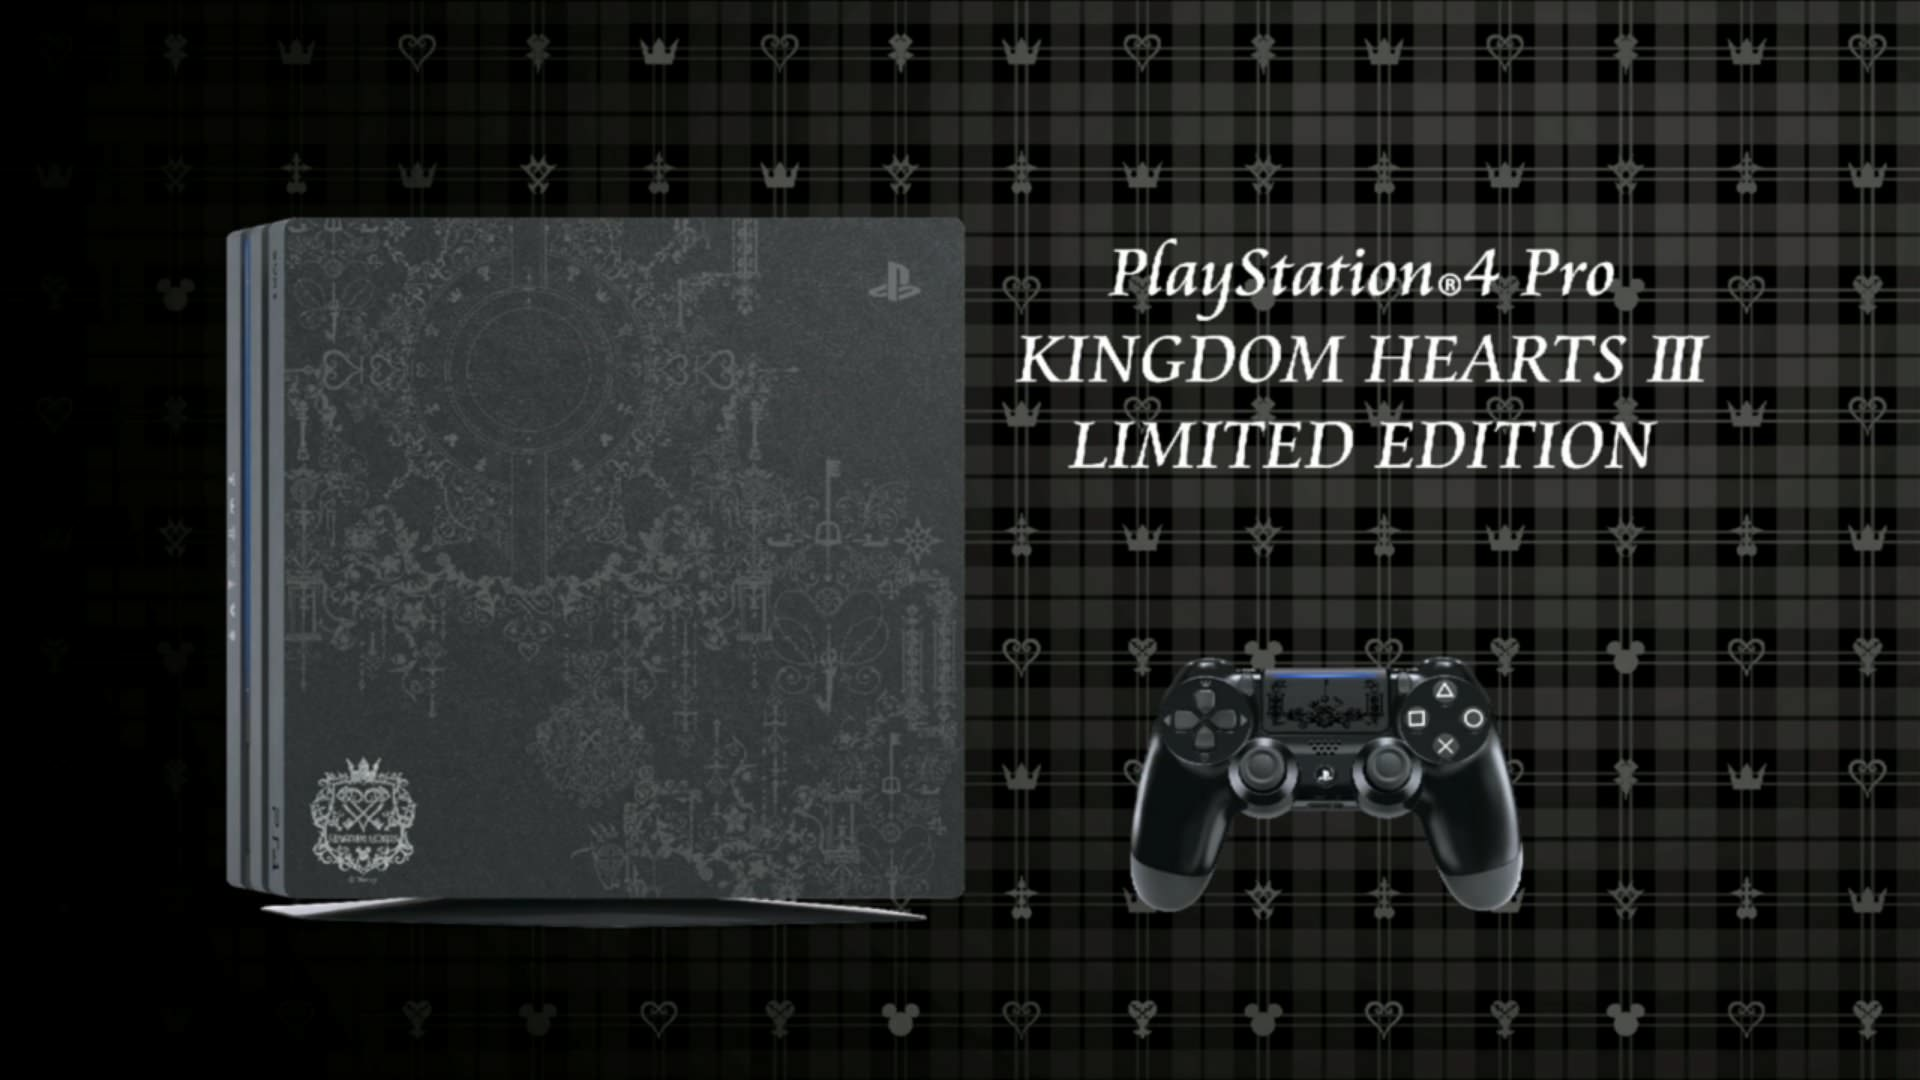 Kingdom Hearts III  - Enfin du gameplay  - Page 2 1528788662-3569-capture-d-ecran